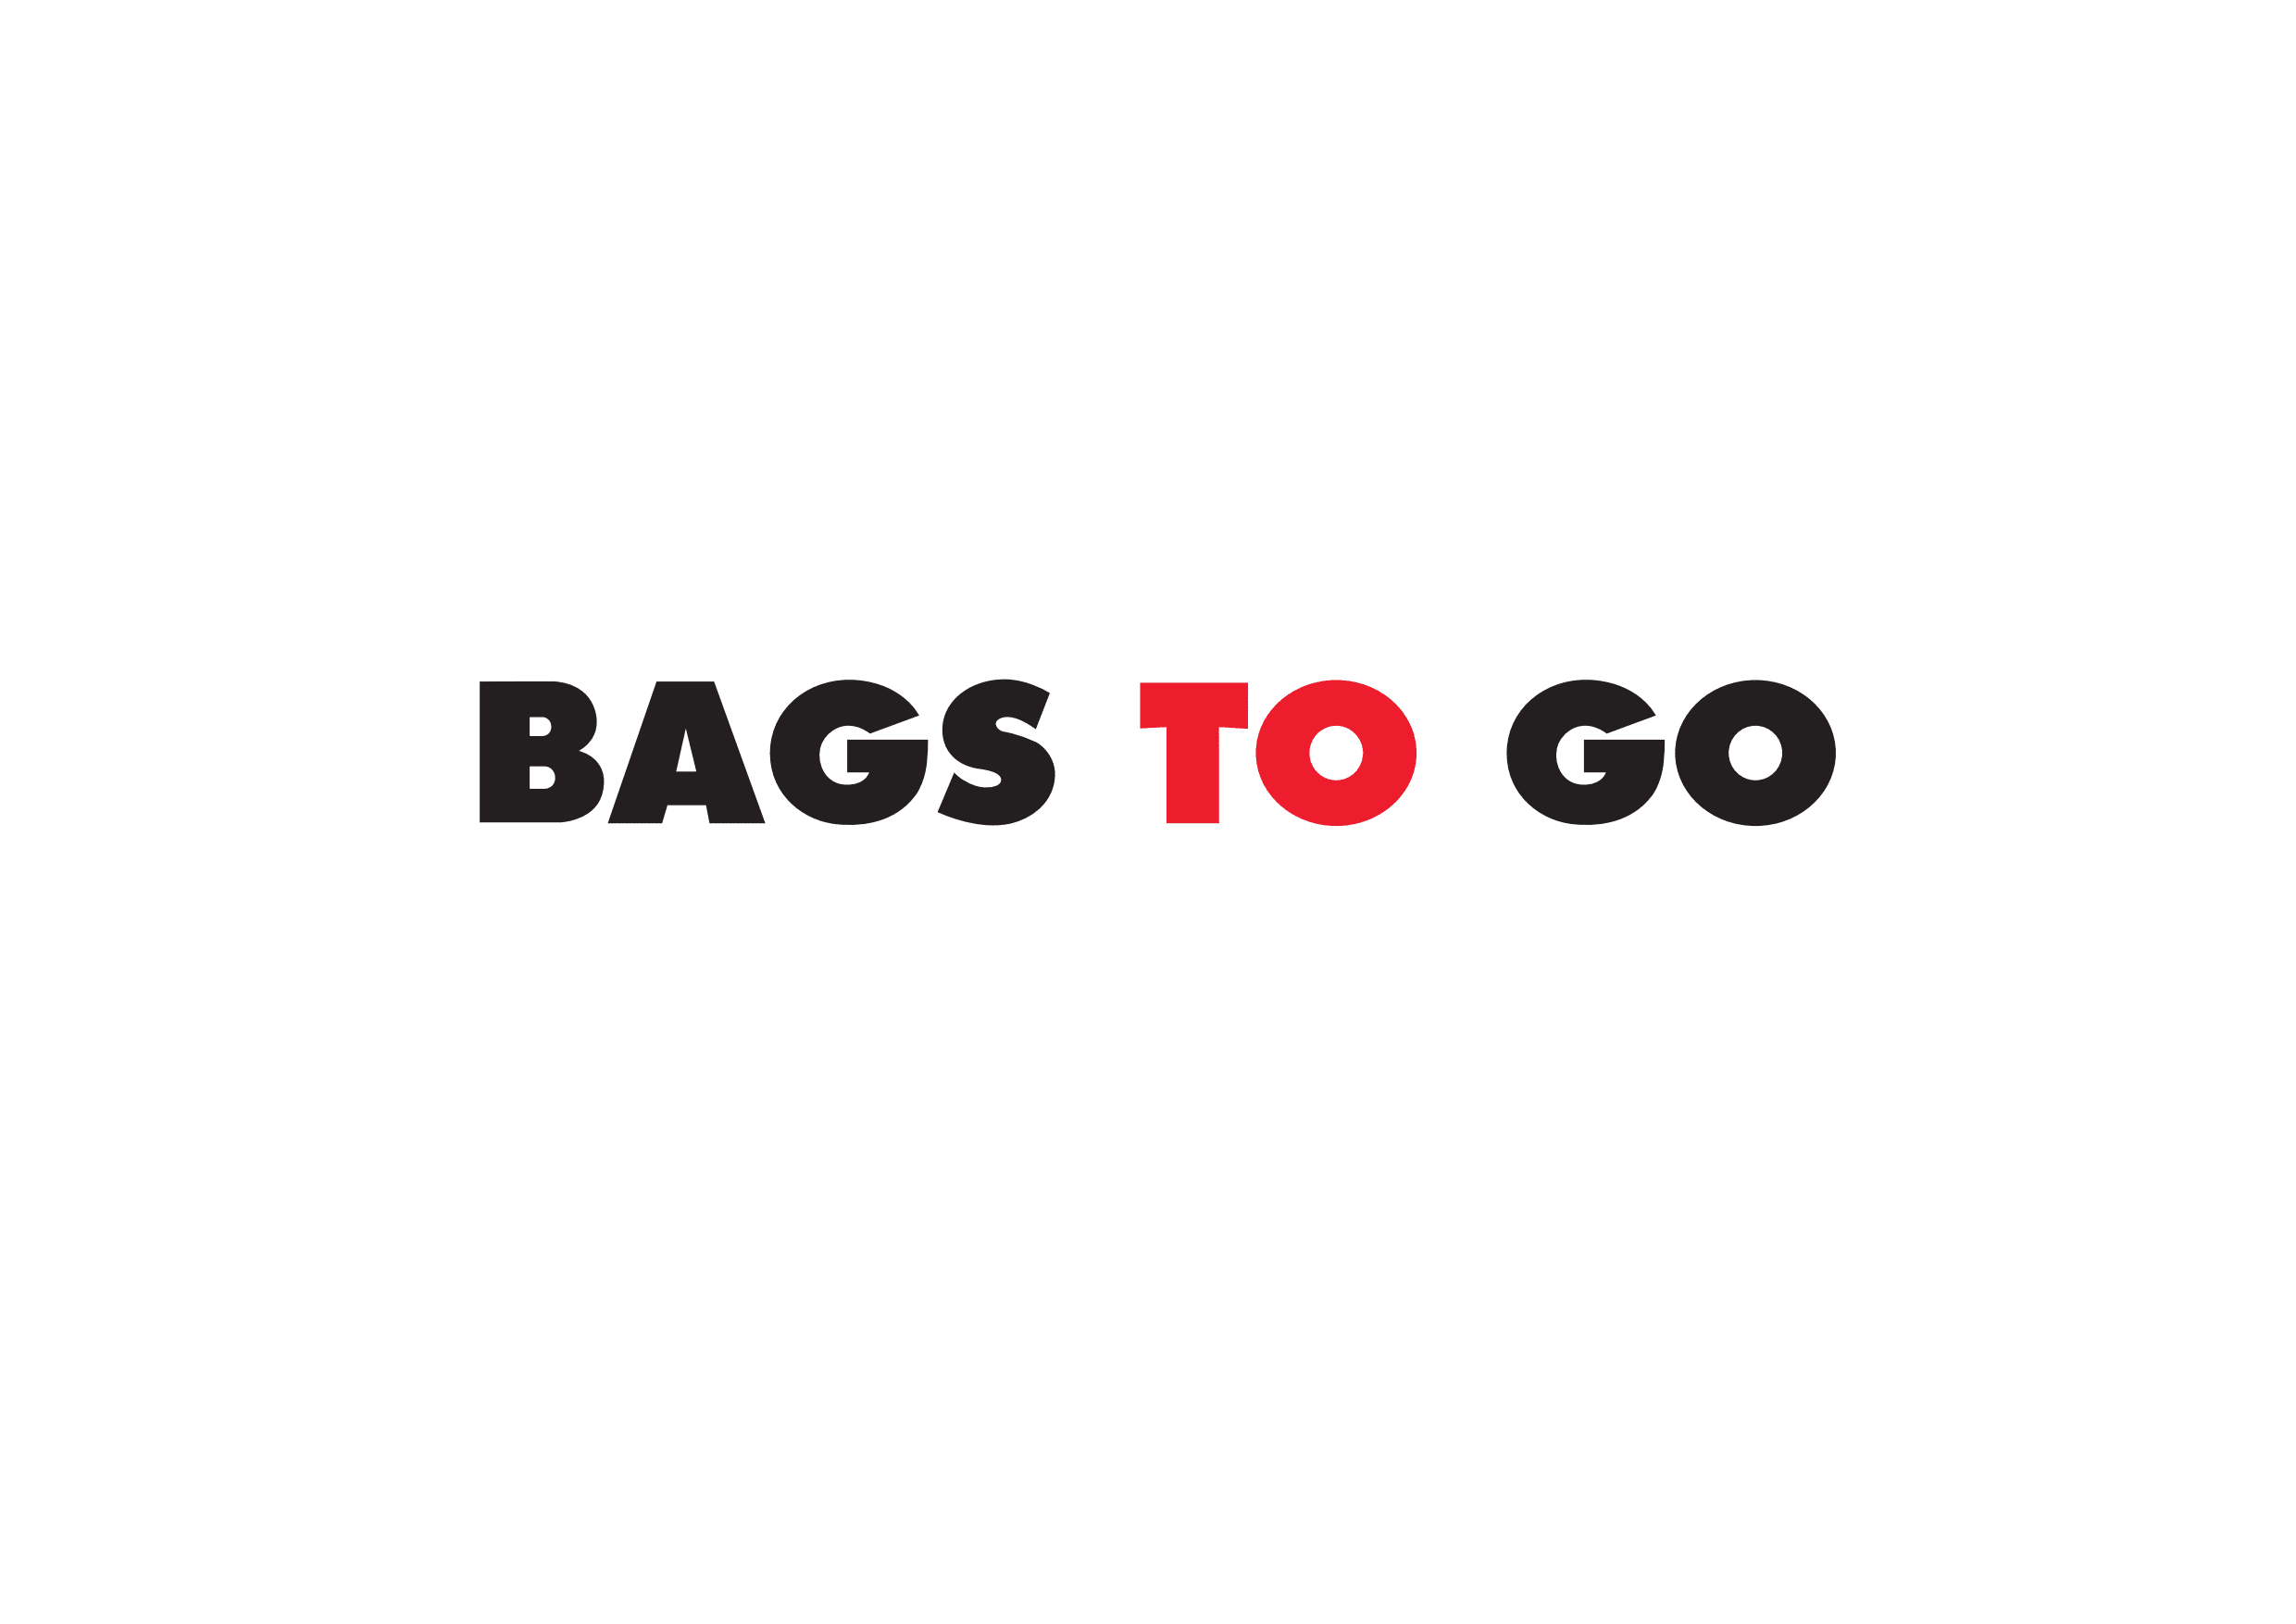 Bags to Go